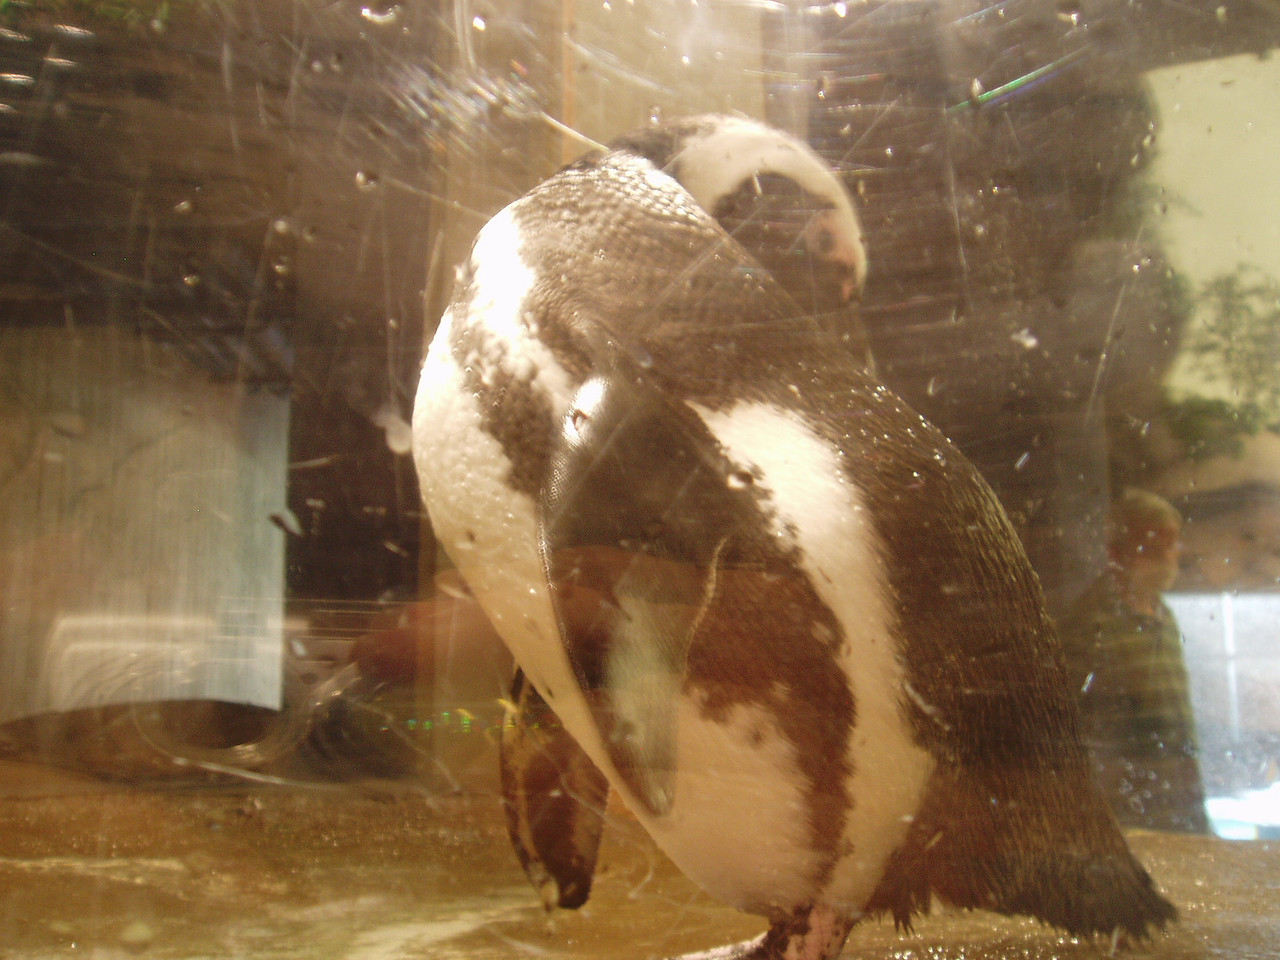 Penguins! You can't tell from this photo but they have a little tunnel you can crawl through and pop up in the actual exhibit inside a small glass bubble.